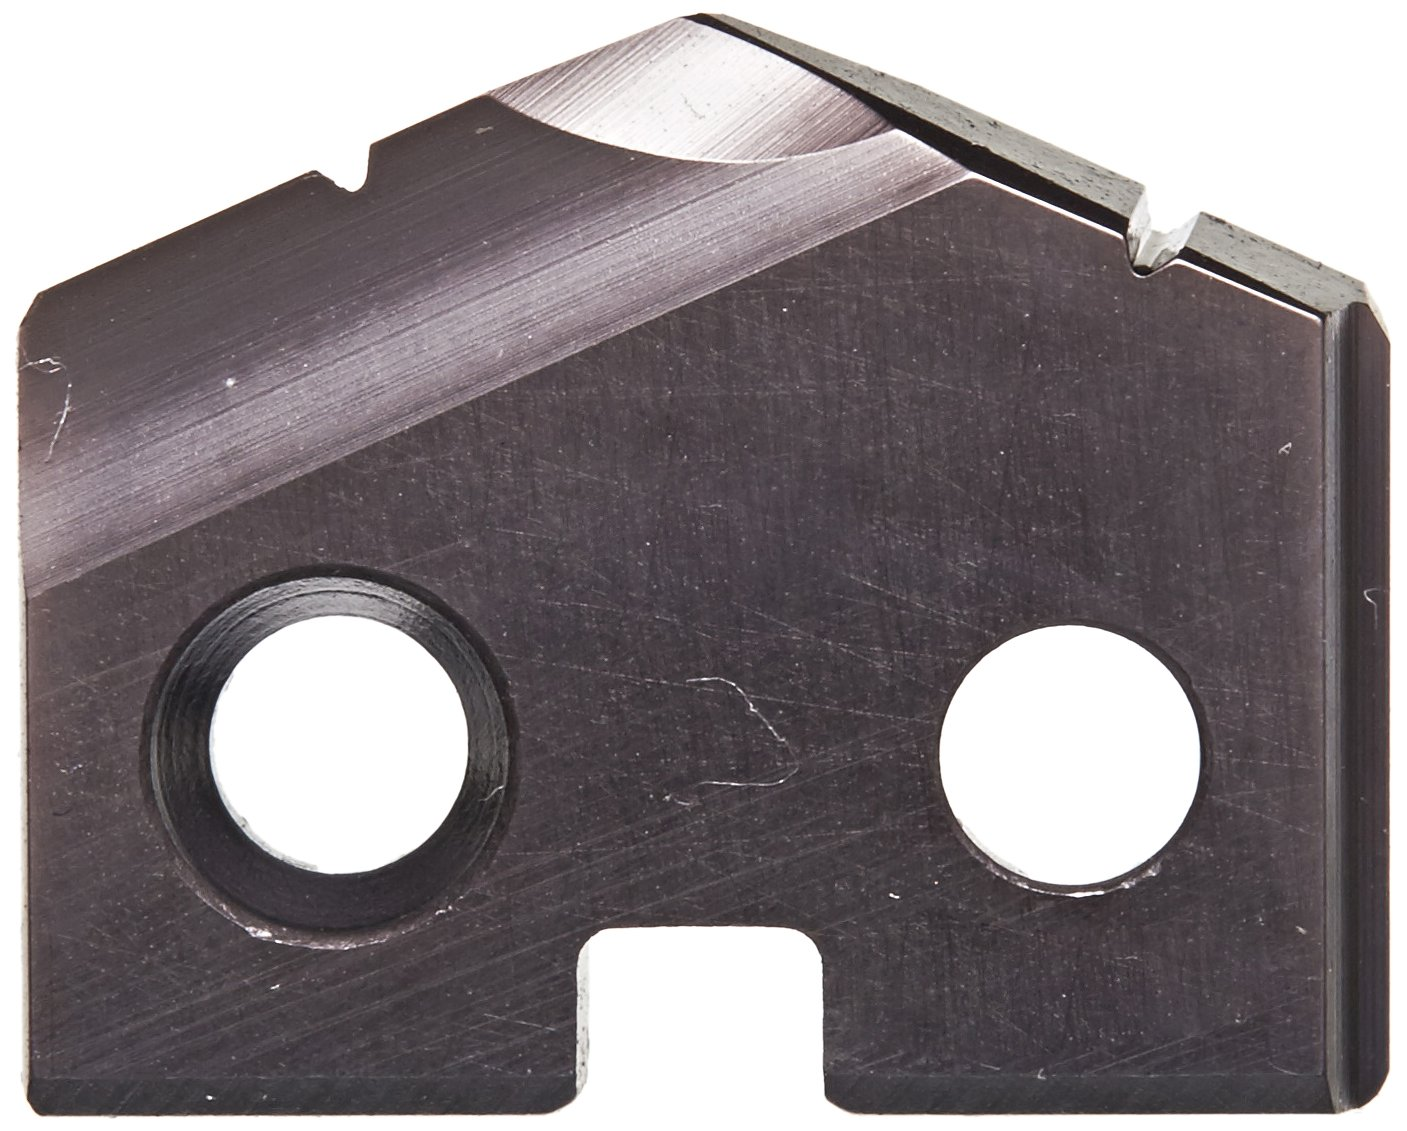 YG-1 S130 Cobalt Steel Throw-Away Drilling Insert TiAlN Finish 1//8 Thick Pack of 2 41//64 Diameter